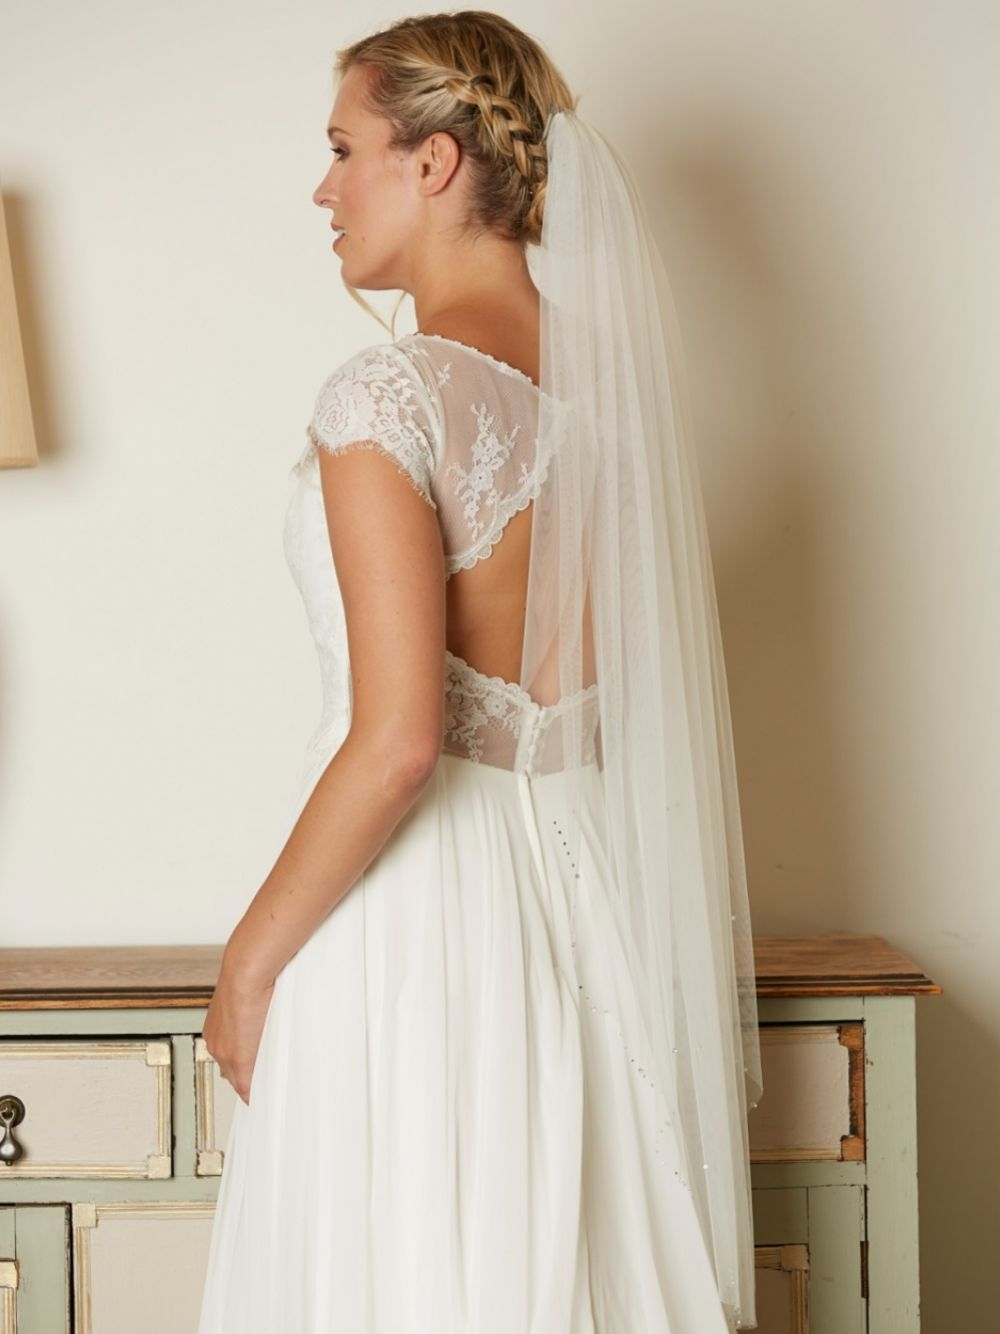 Linzi Jay Single Tier Ivory Tulle Veil with Diamante and Crystal Edge V728